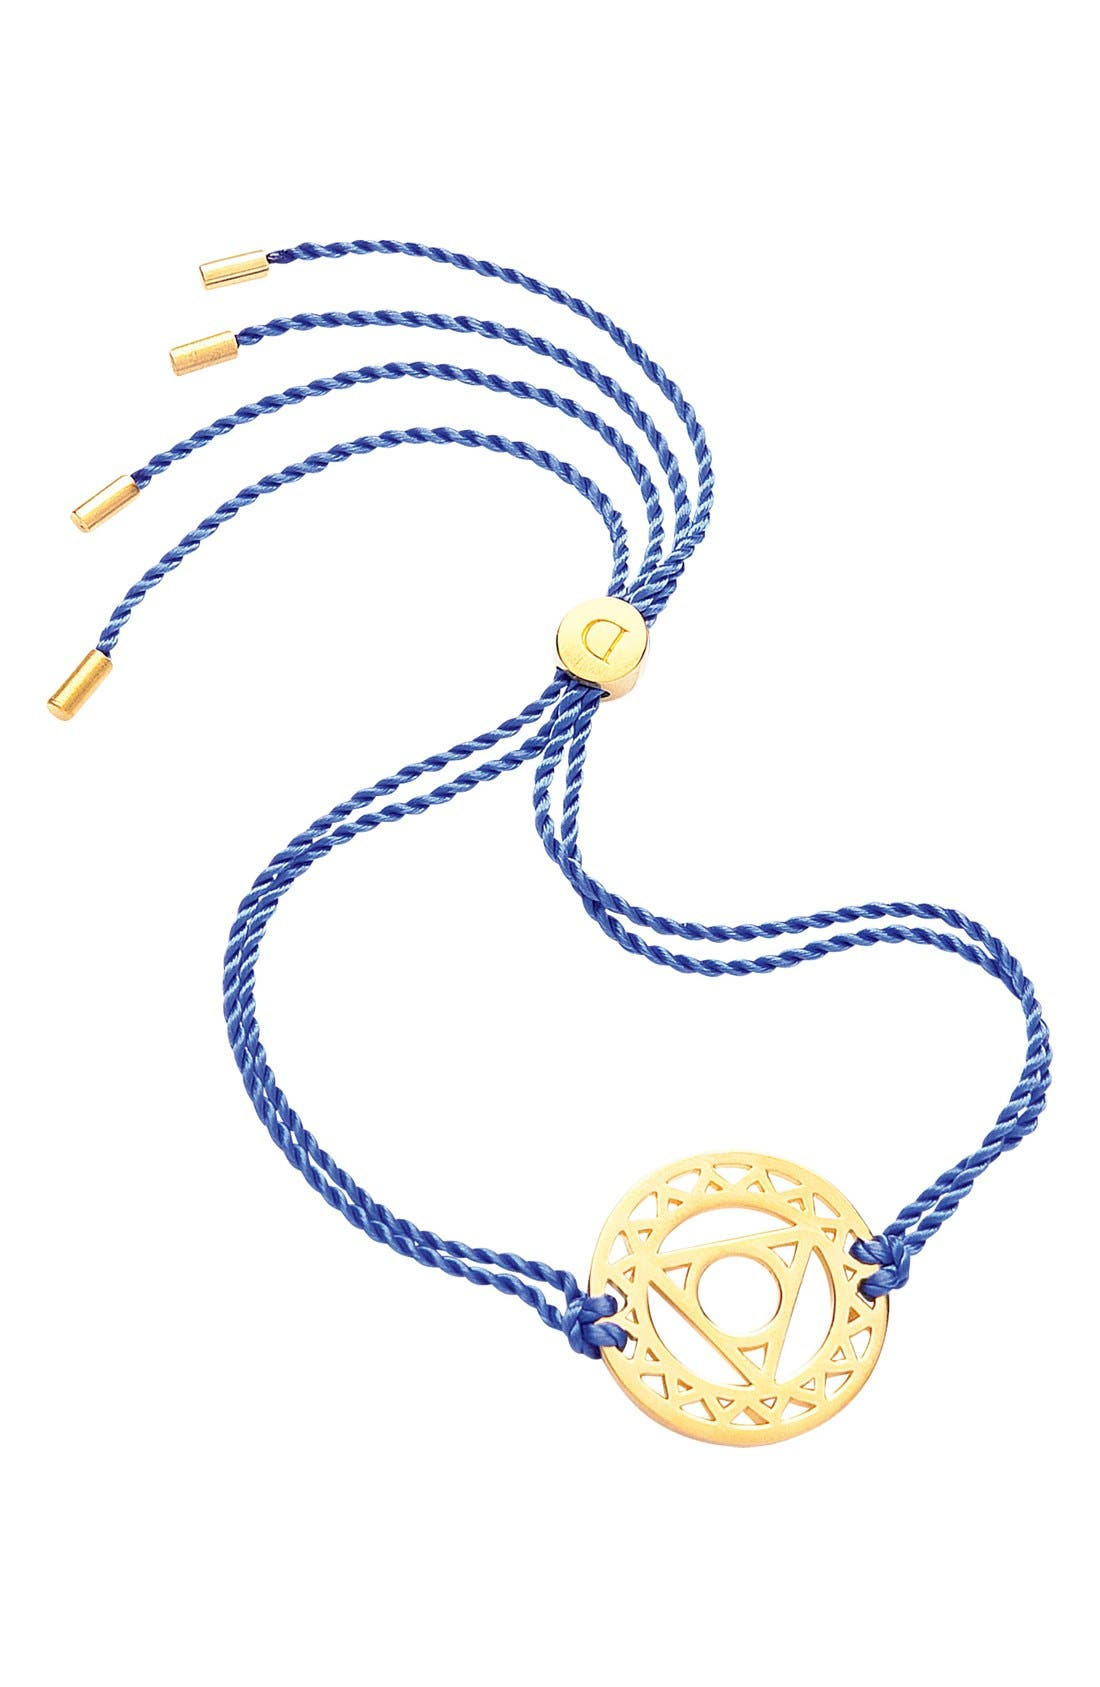 'Throat Chakra' Cord Bracelet,                         Main,                         color, 24Ct Gold Plate/Blue